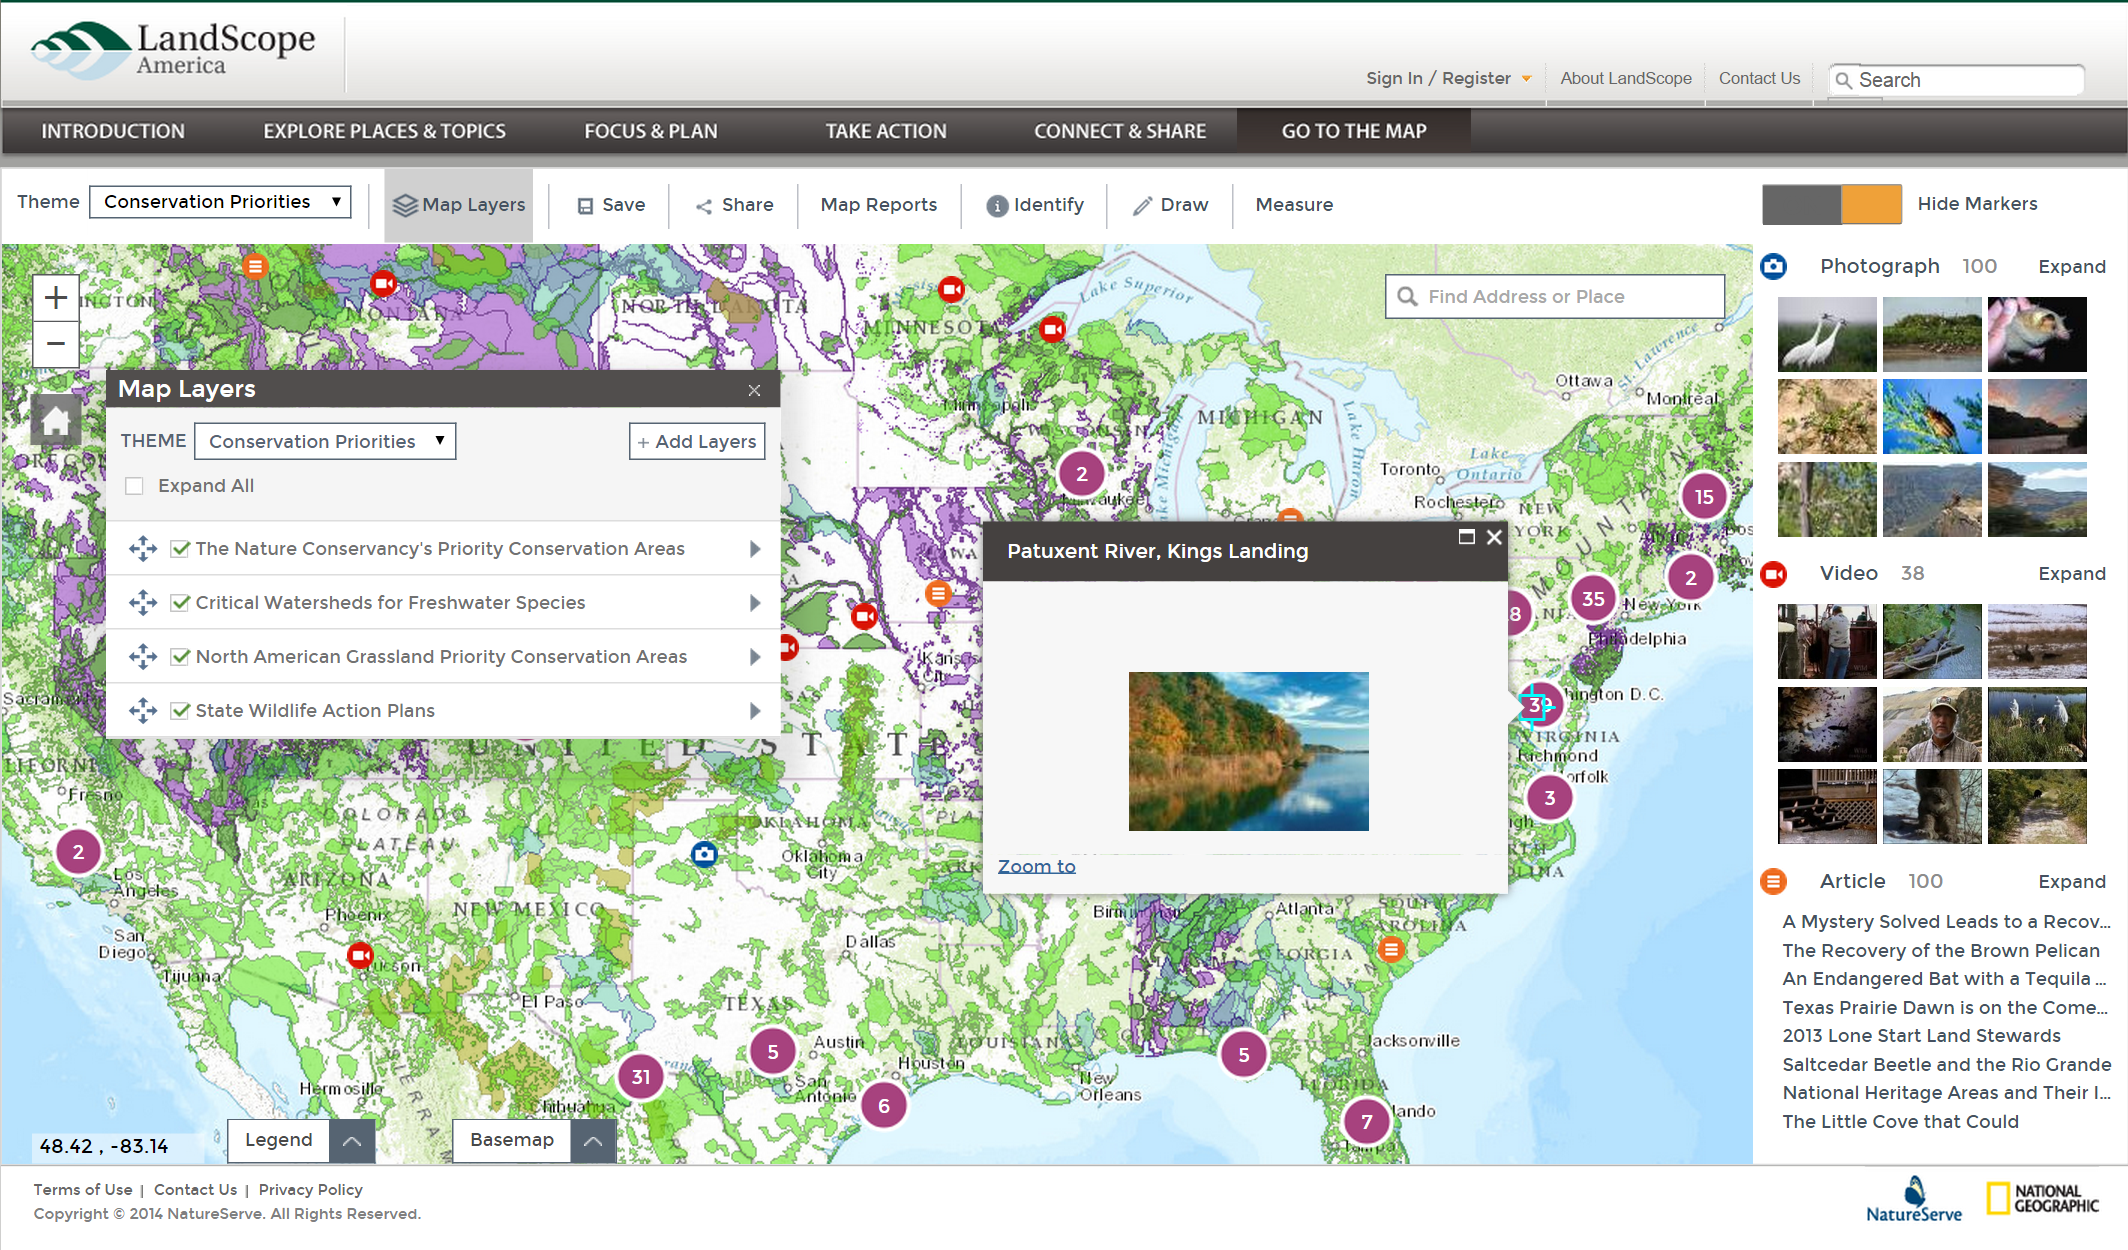 A modernized and more intuitive map viewer highlights the latest upgrades to LandScope America.